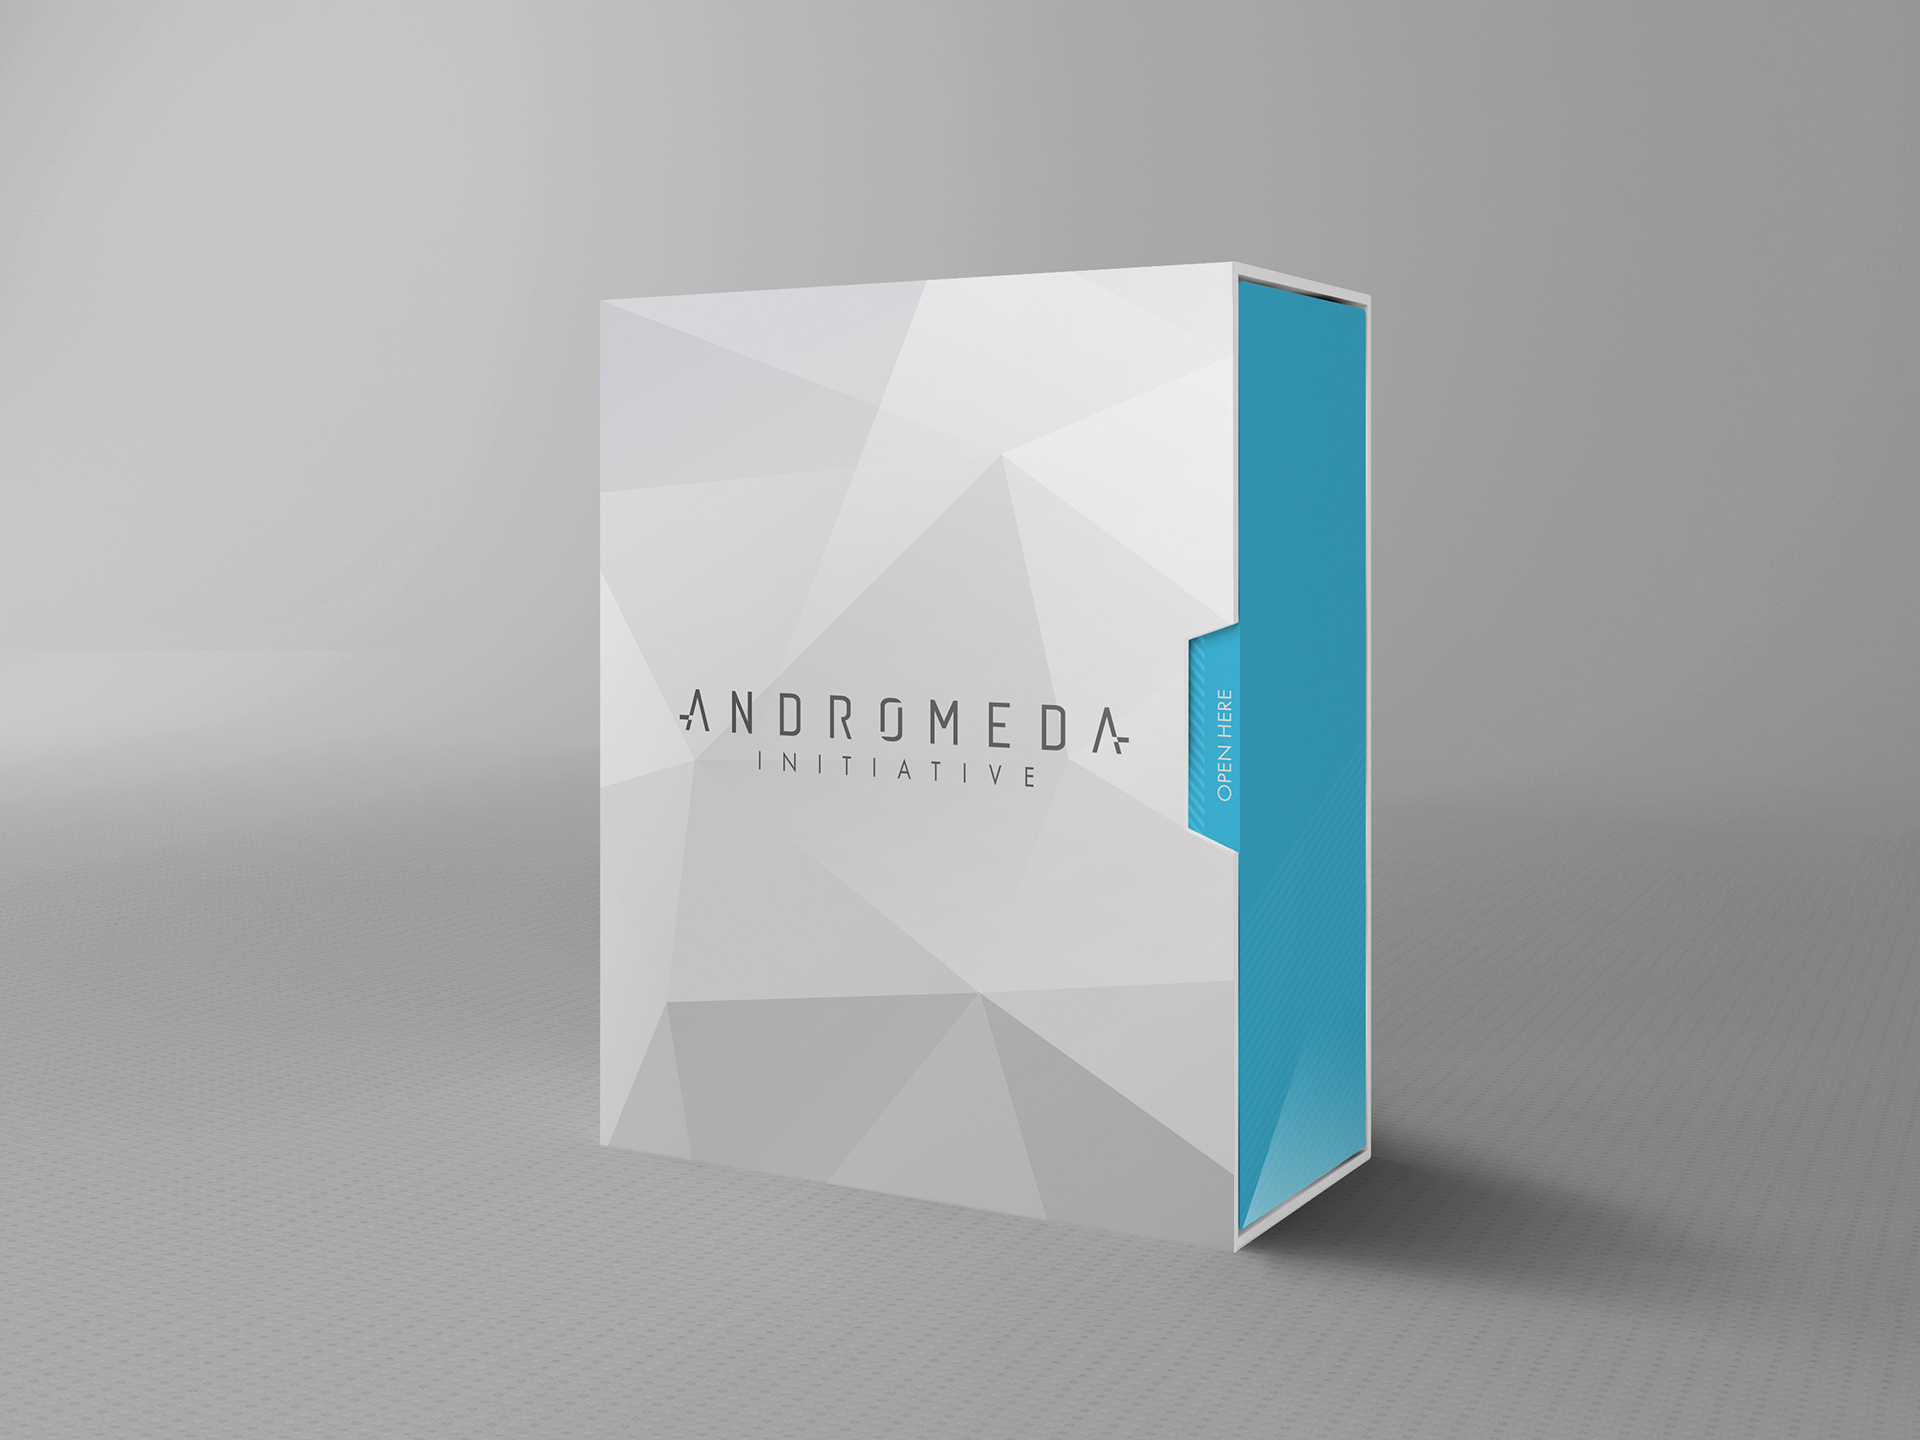 Andromeda Initiative - EA UK Influencer Kit mockup